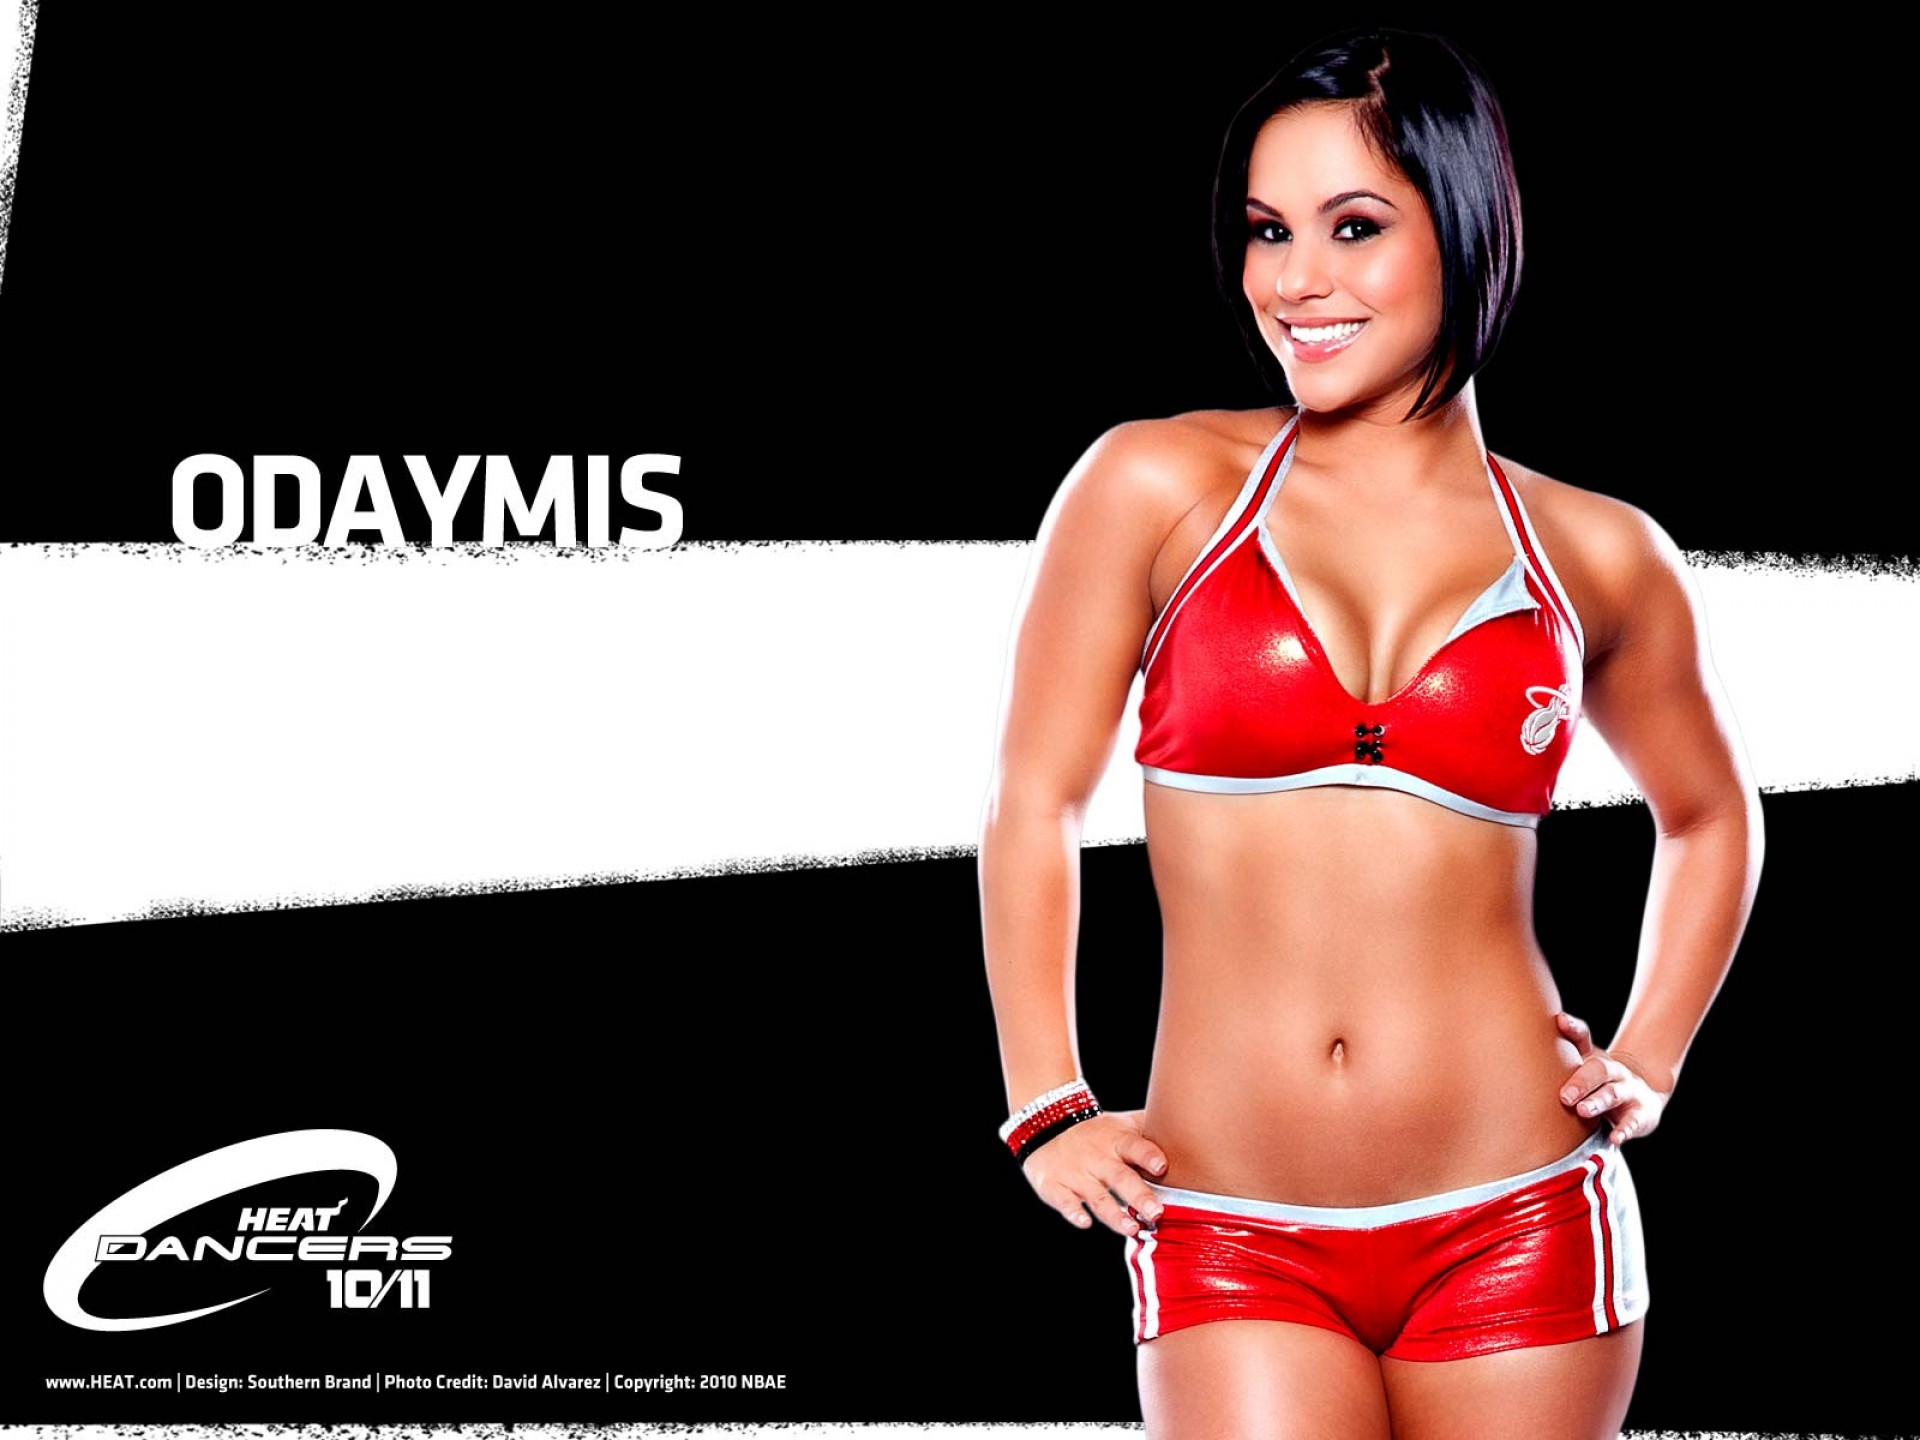 Miami Heat Nba Dancers Odaymis United States Usa HD Wallpaper